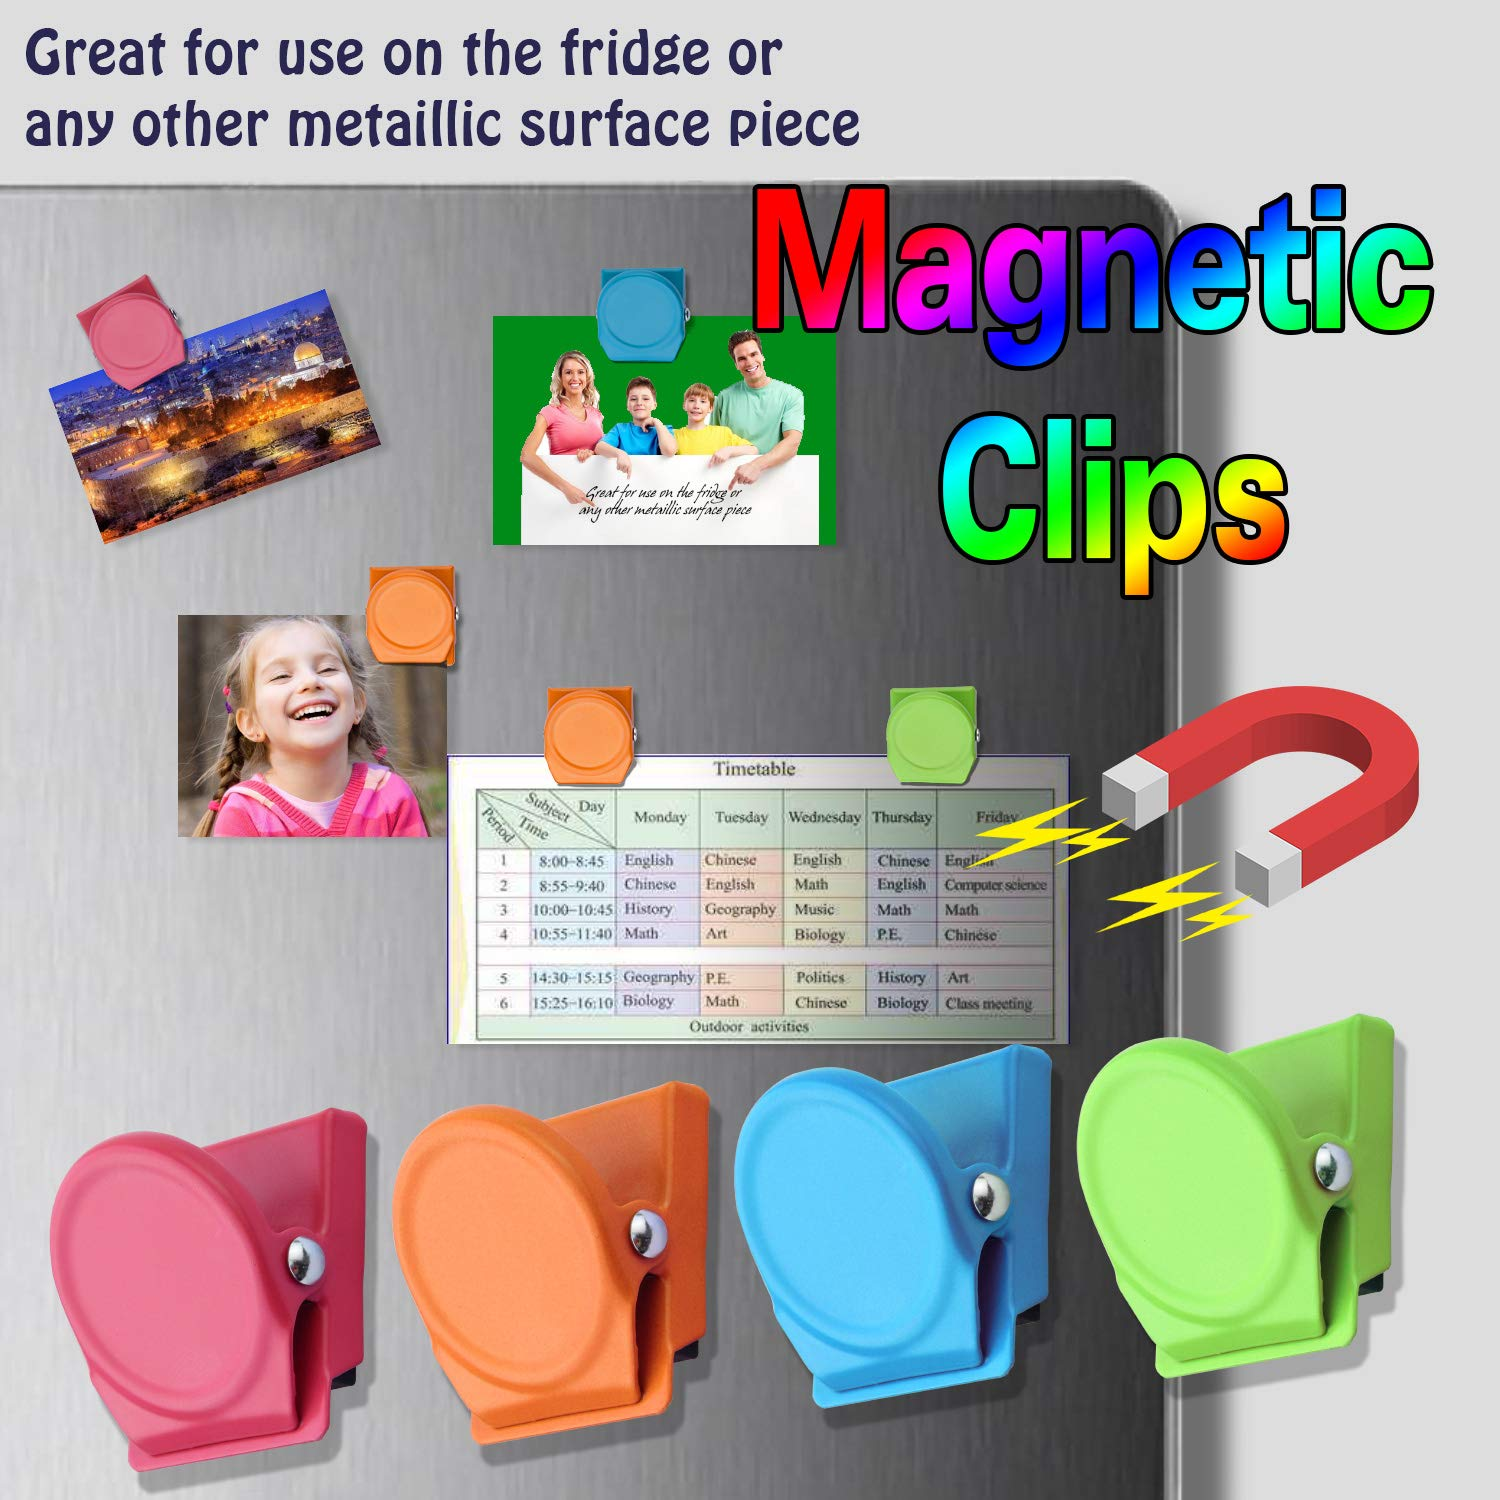 24 Pieces Magnetic Metal Clips Datedirect Magnetic Metal Paper Clips Holder Refrigerator Whiteboard Wall Fridge Locker Magnetic Memo Note Clips Magnets Metal Clip